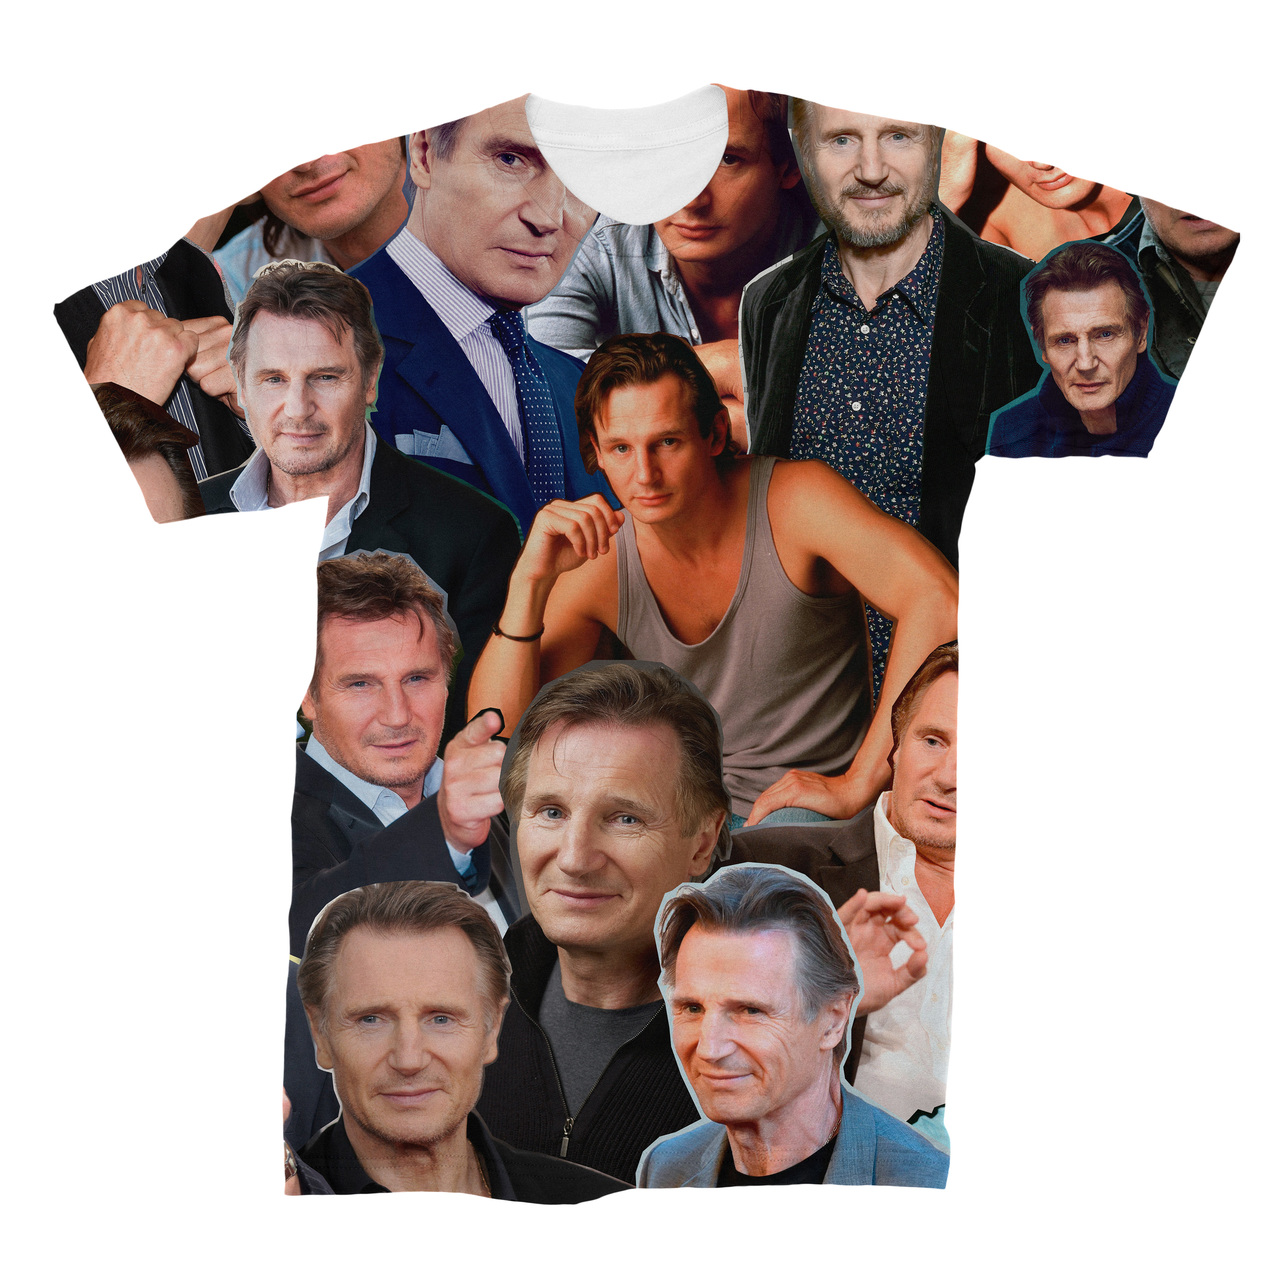 d0268c152f0eee Liam Neeson Photo Collage T-Shirt - Subliworks